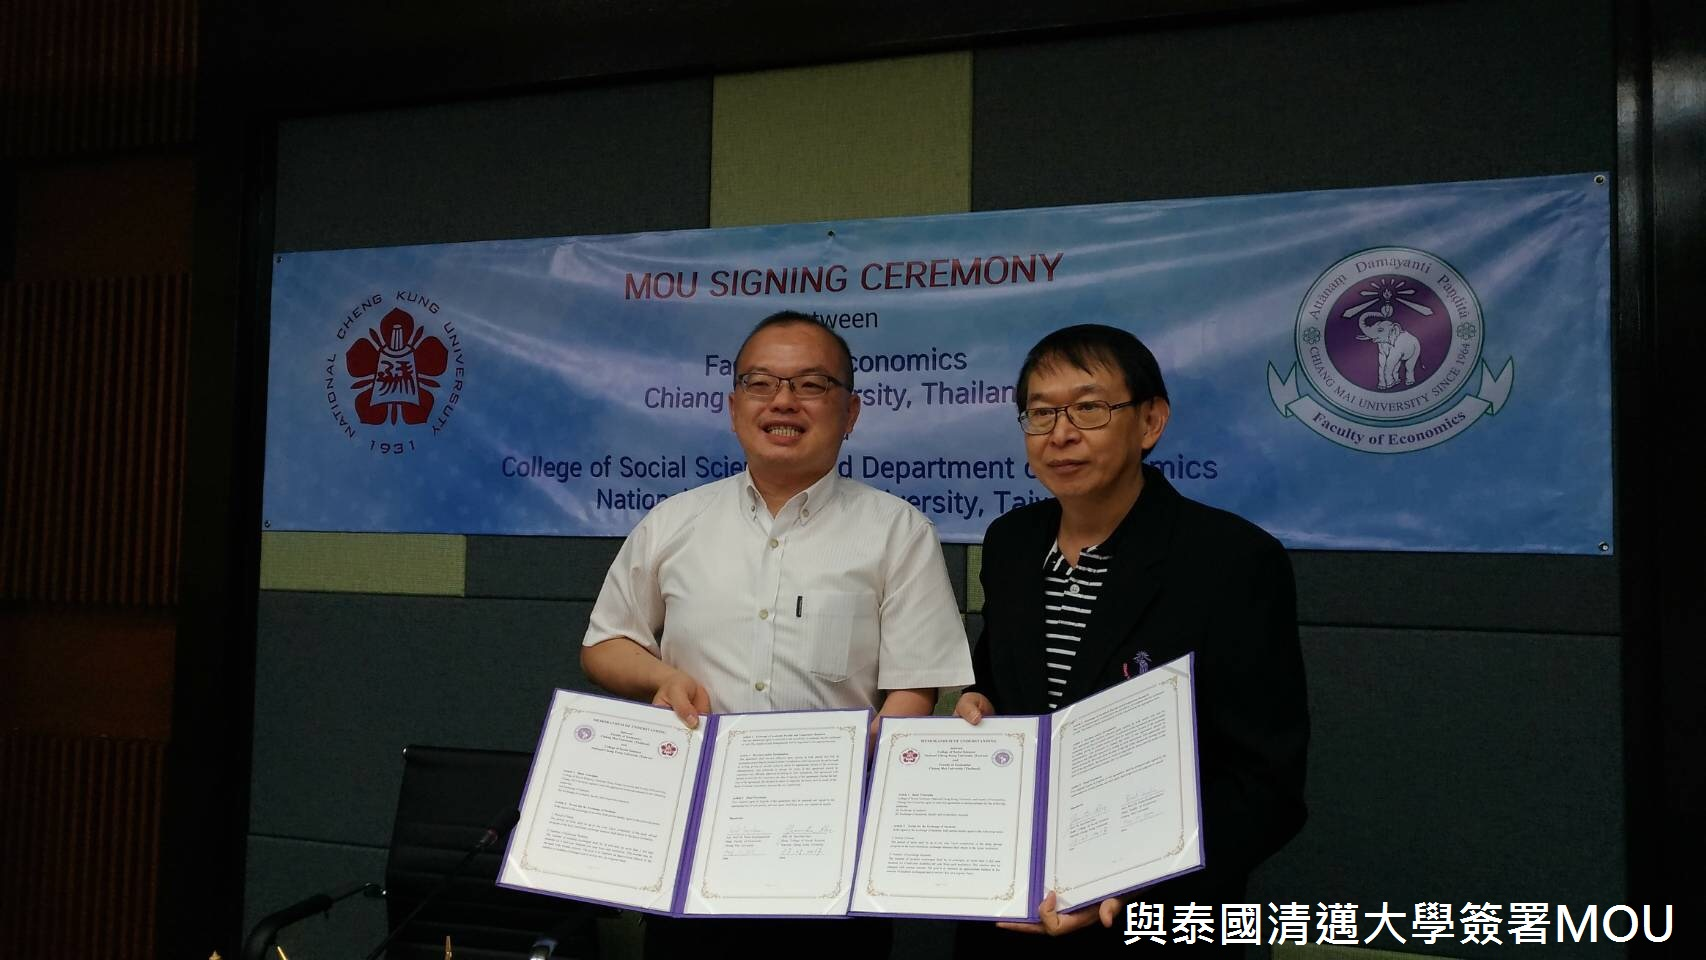 Signing MOU with Chingmai Univ. Thailand